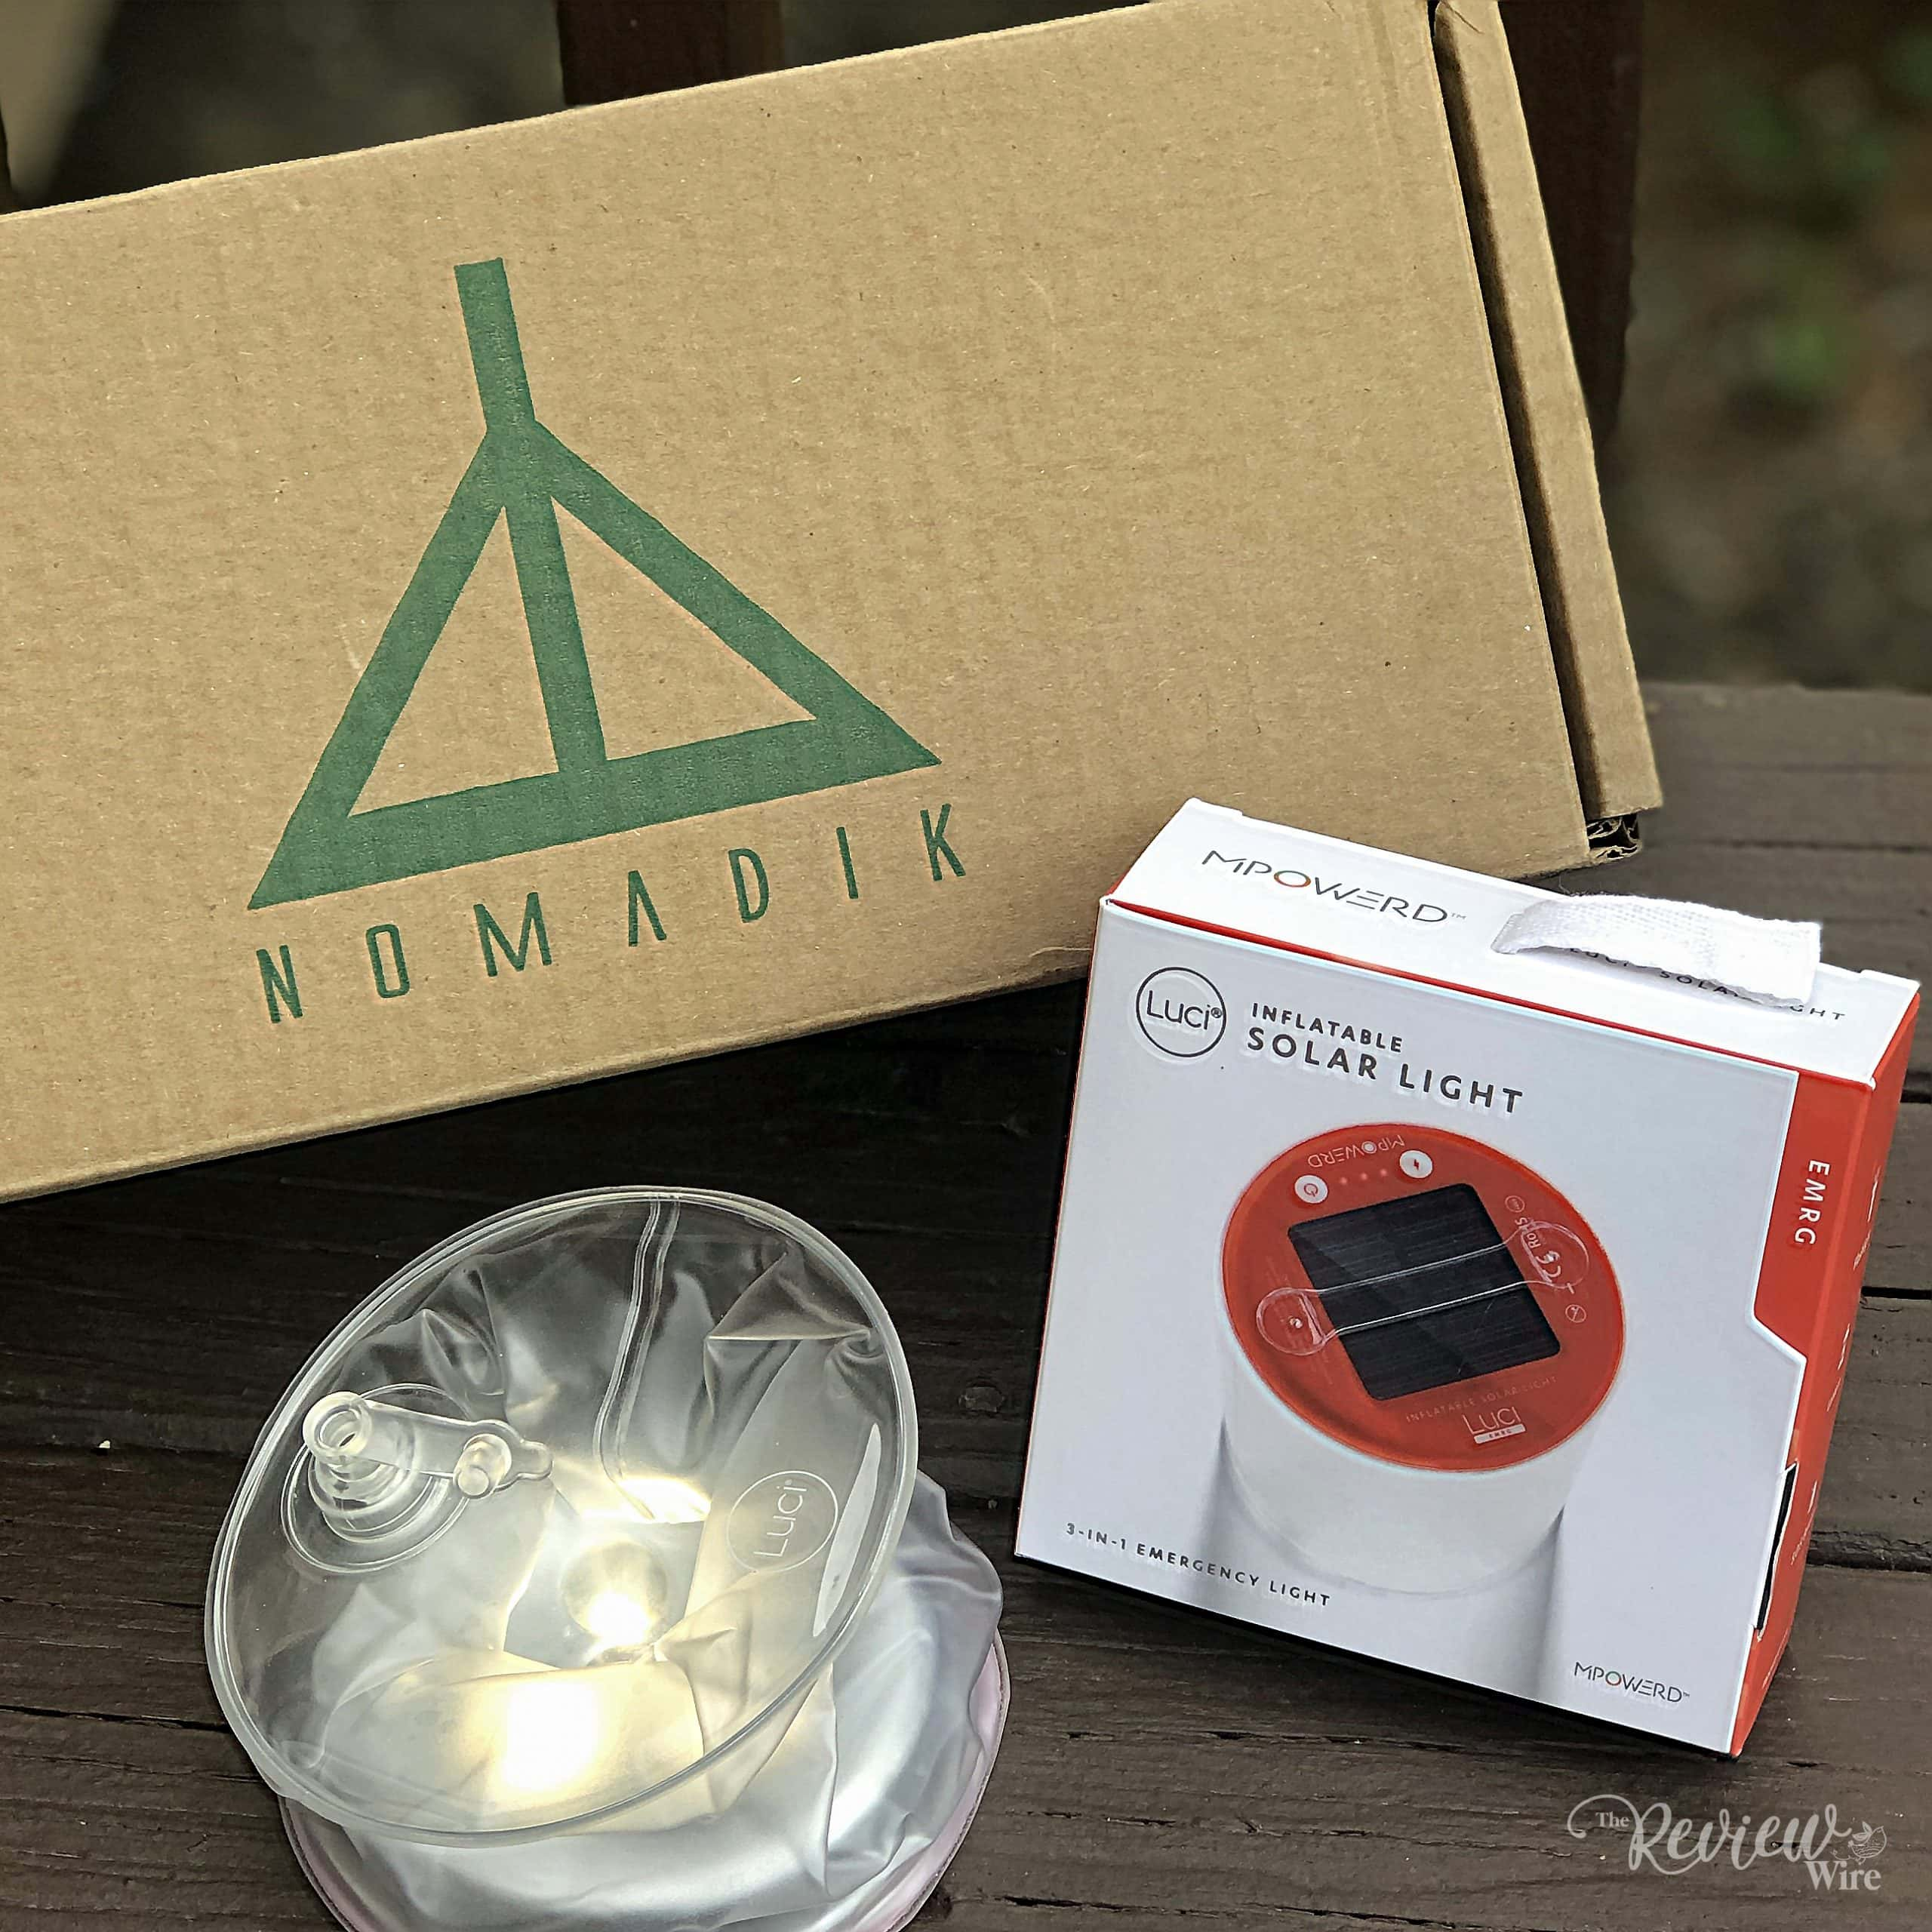 The Review Wire - The Nomadik - MPOWERD Luci EMRG (2)